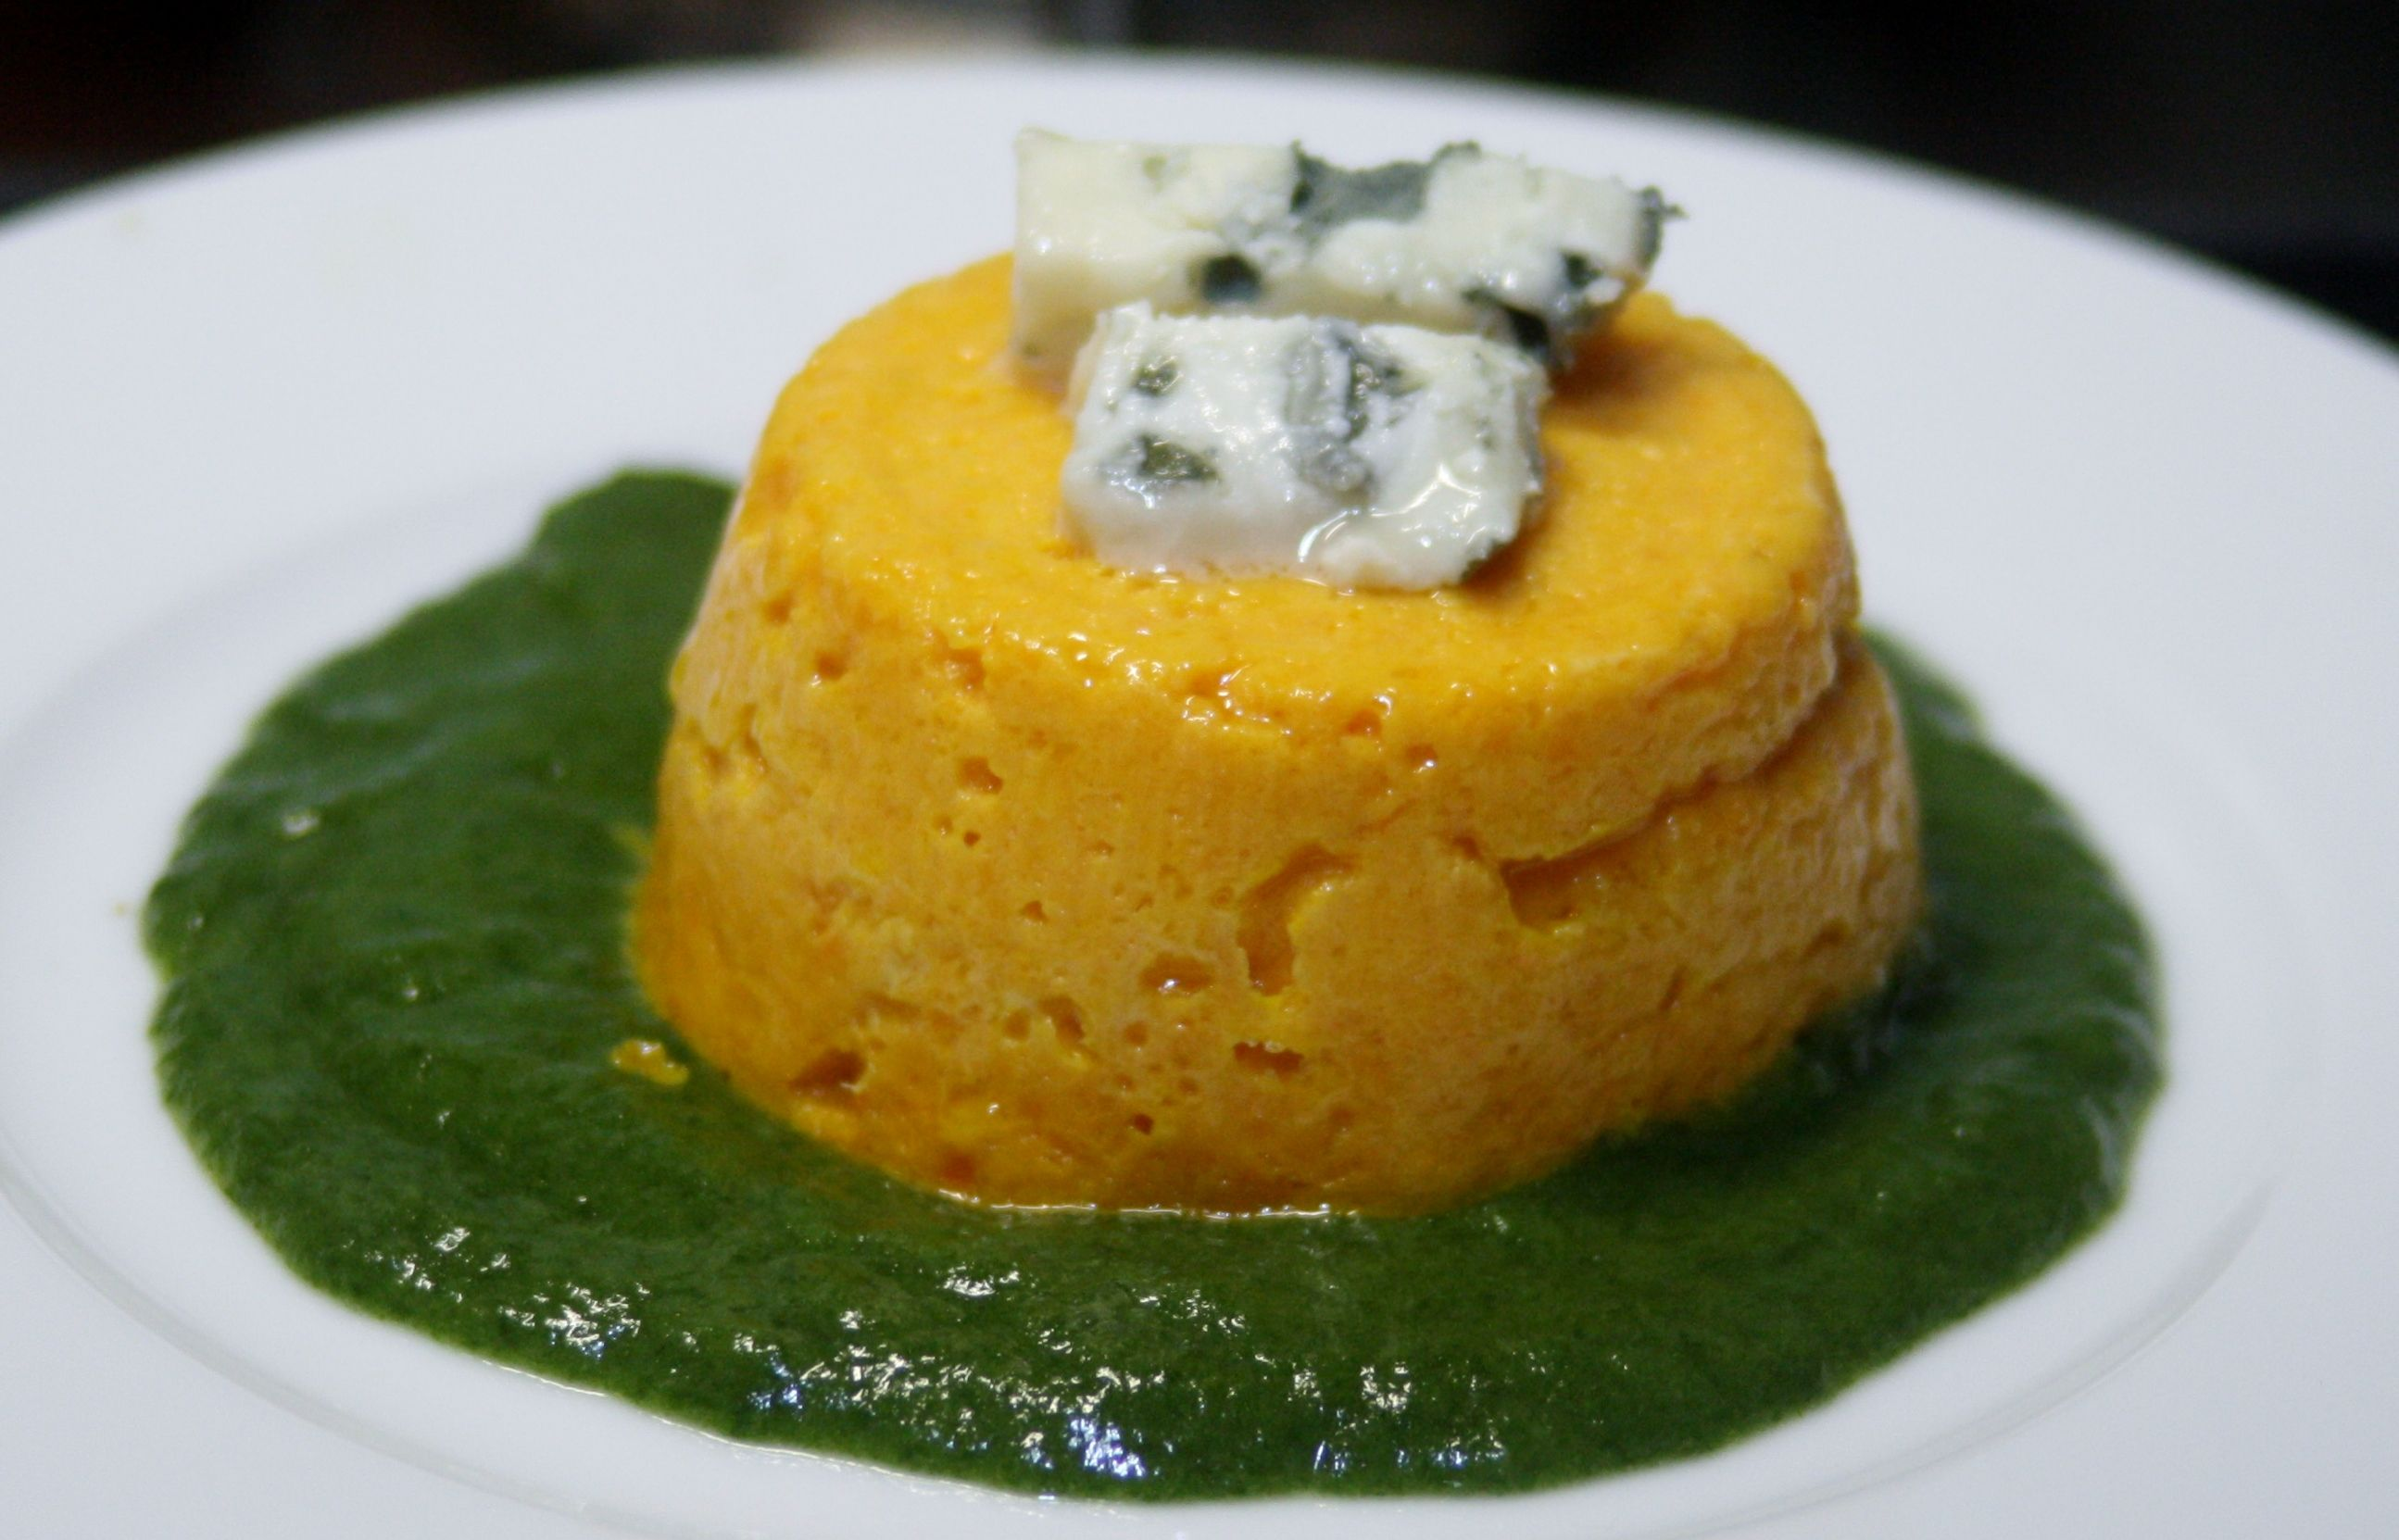 carrots flan, Roquefort cheese and spinach sauce